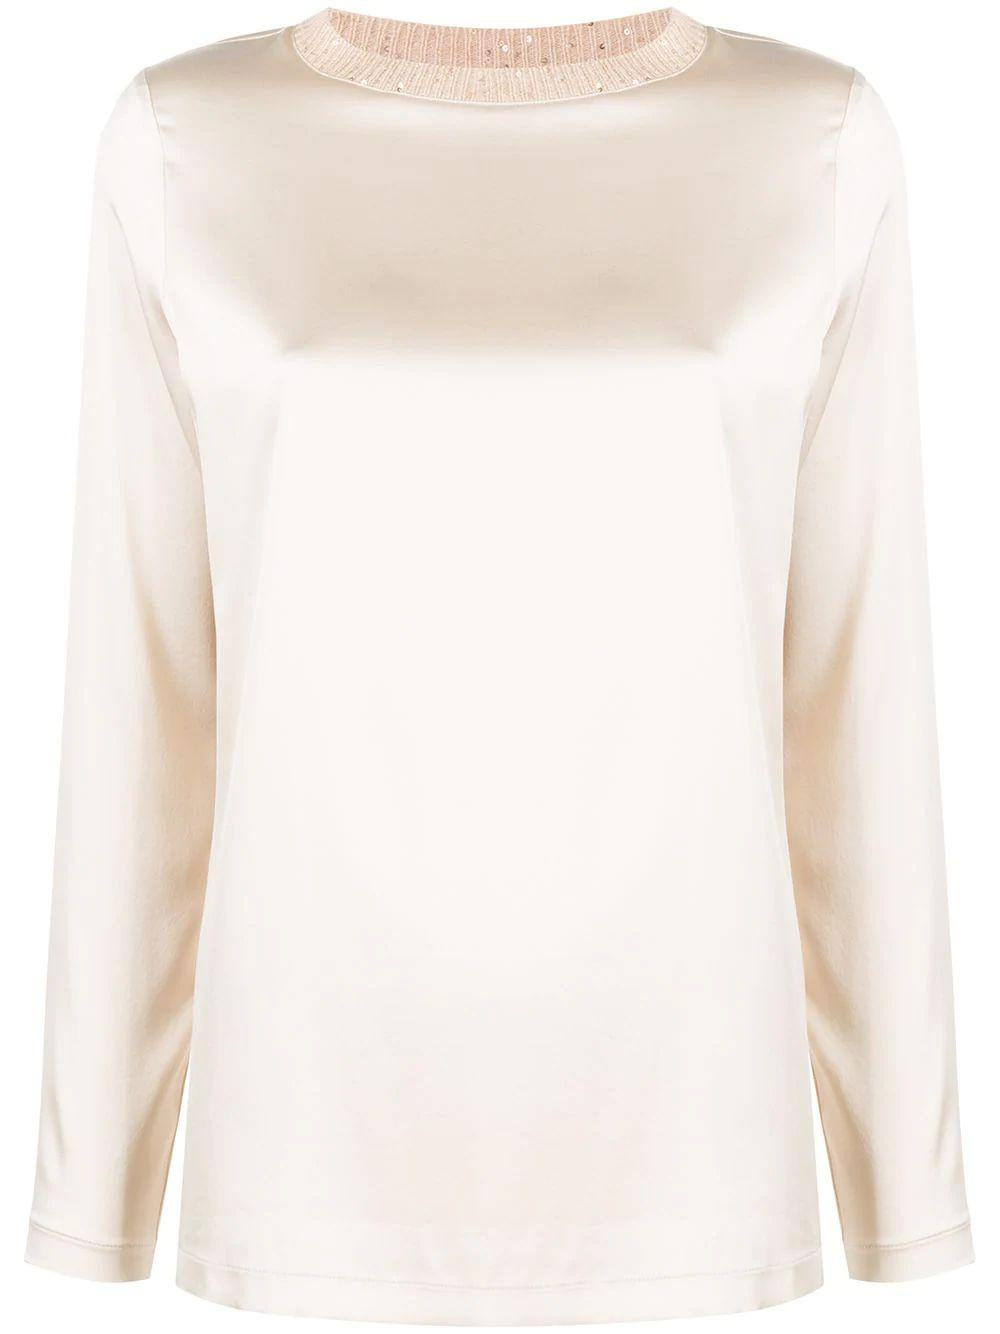 Silk Blouse With Embellished Neckline